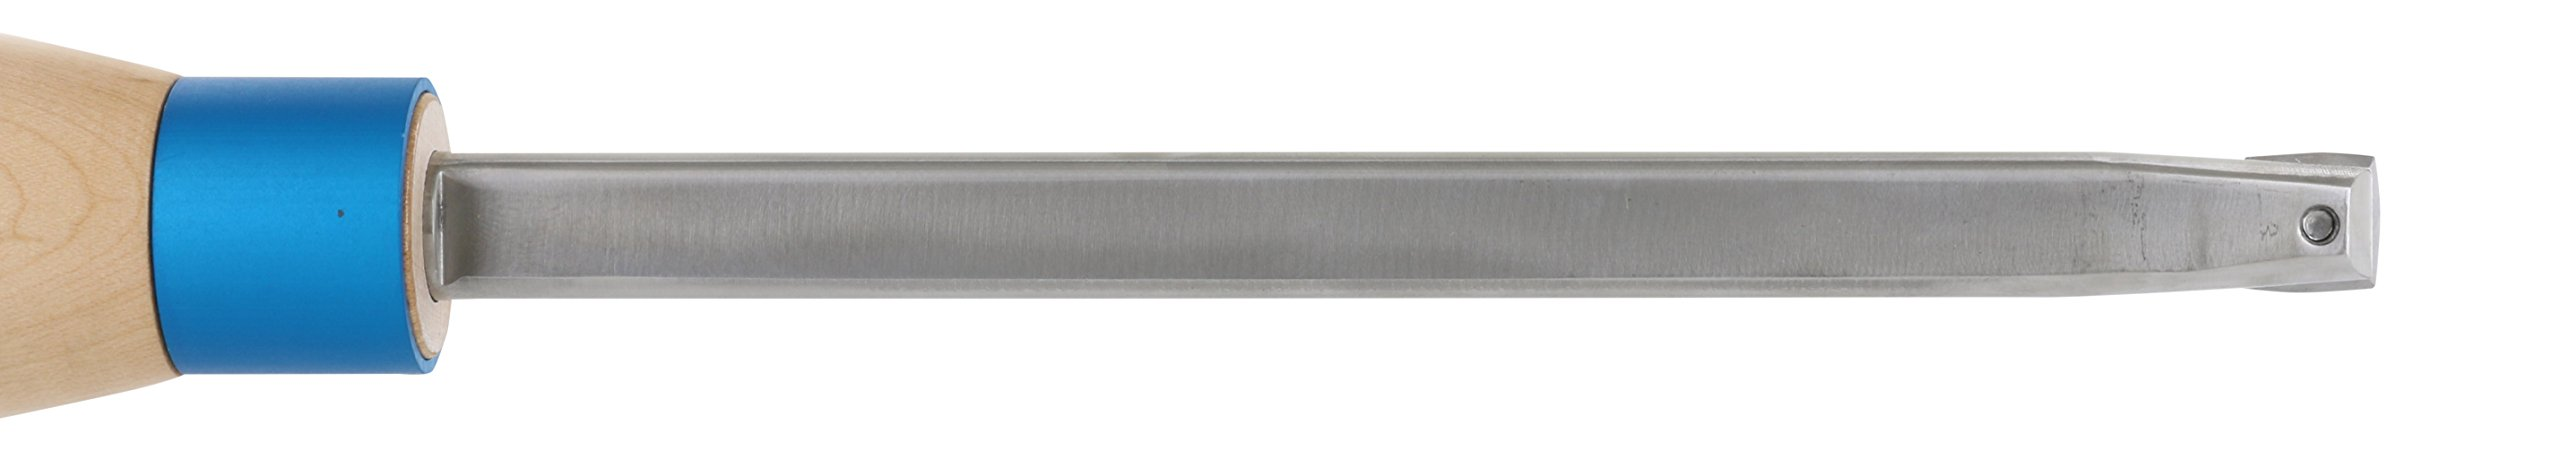 AXE Square Replaceable Bit Full Size Carbide Turning Tool by Carter (Image #3)